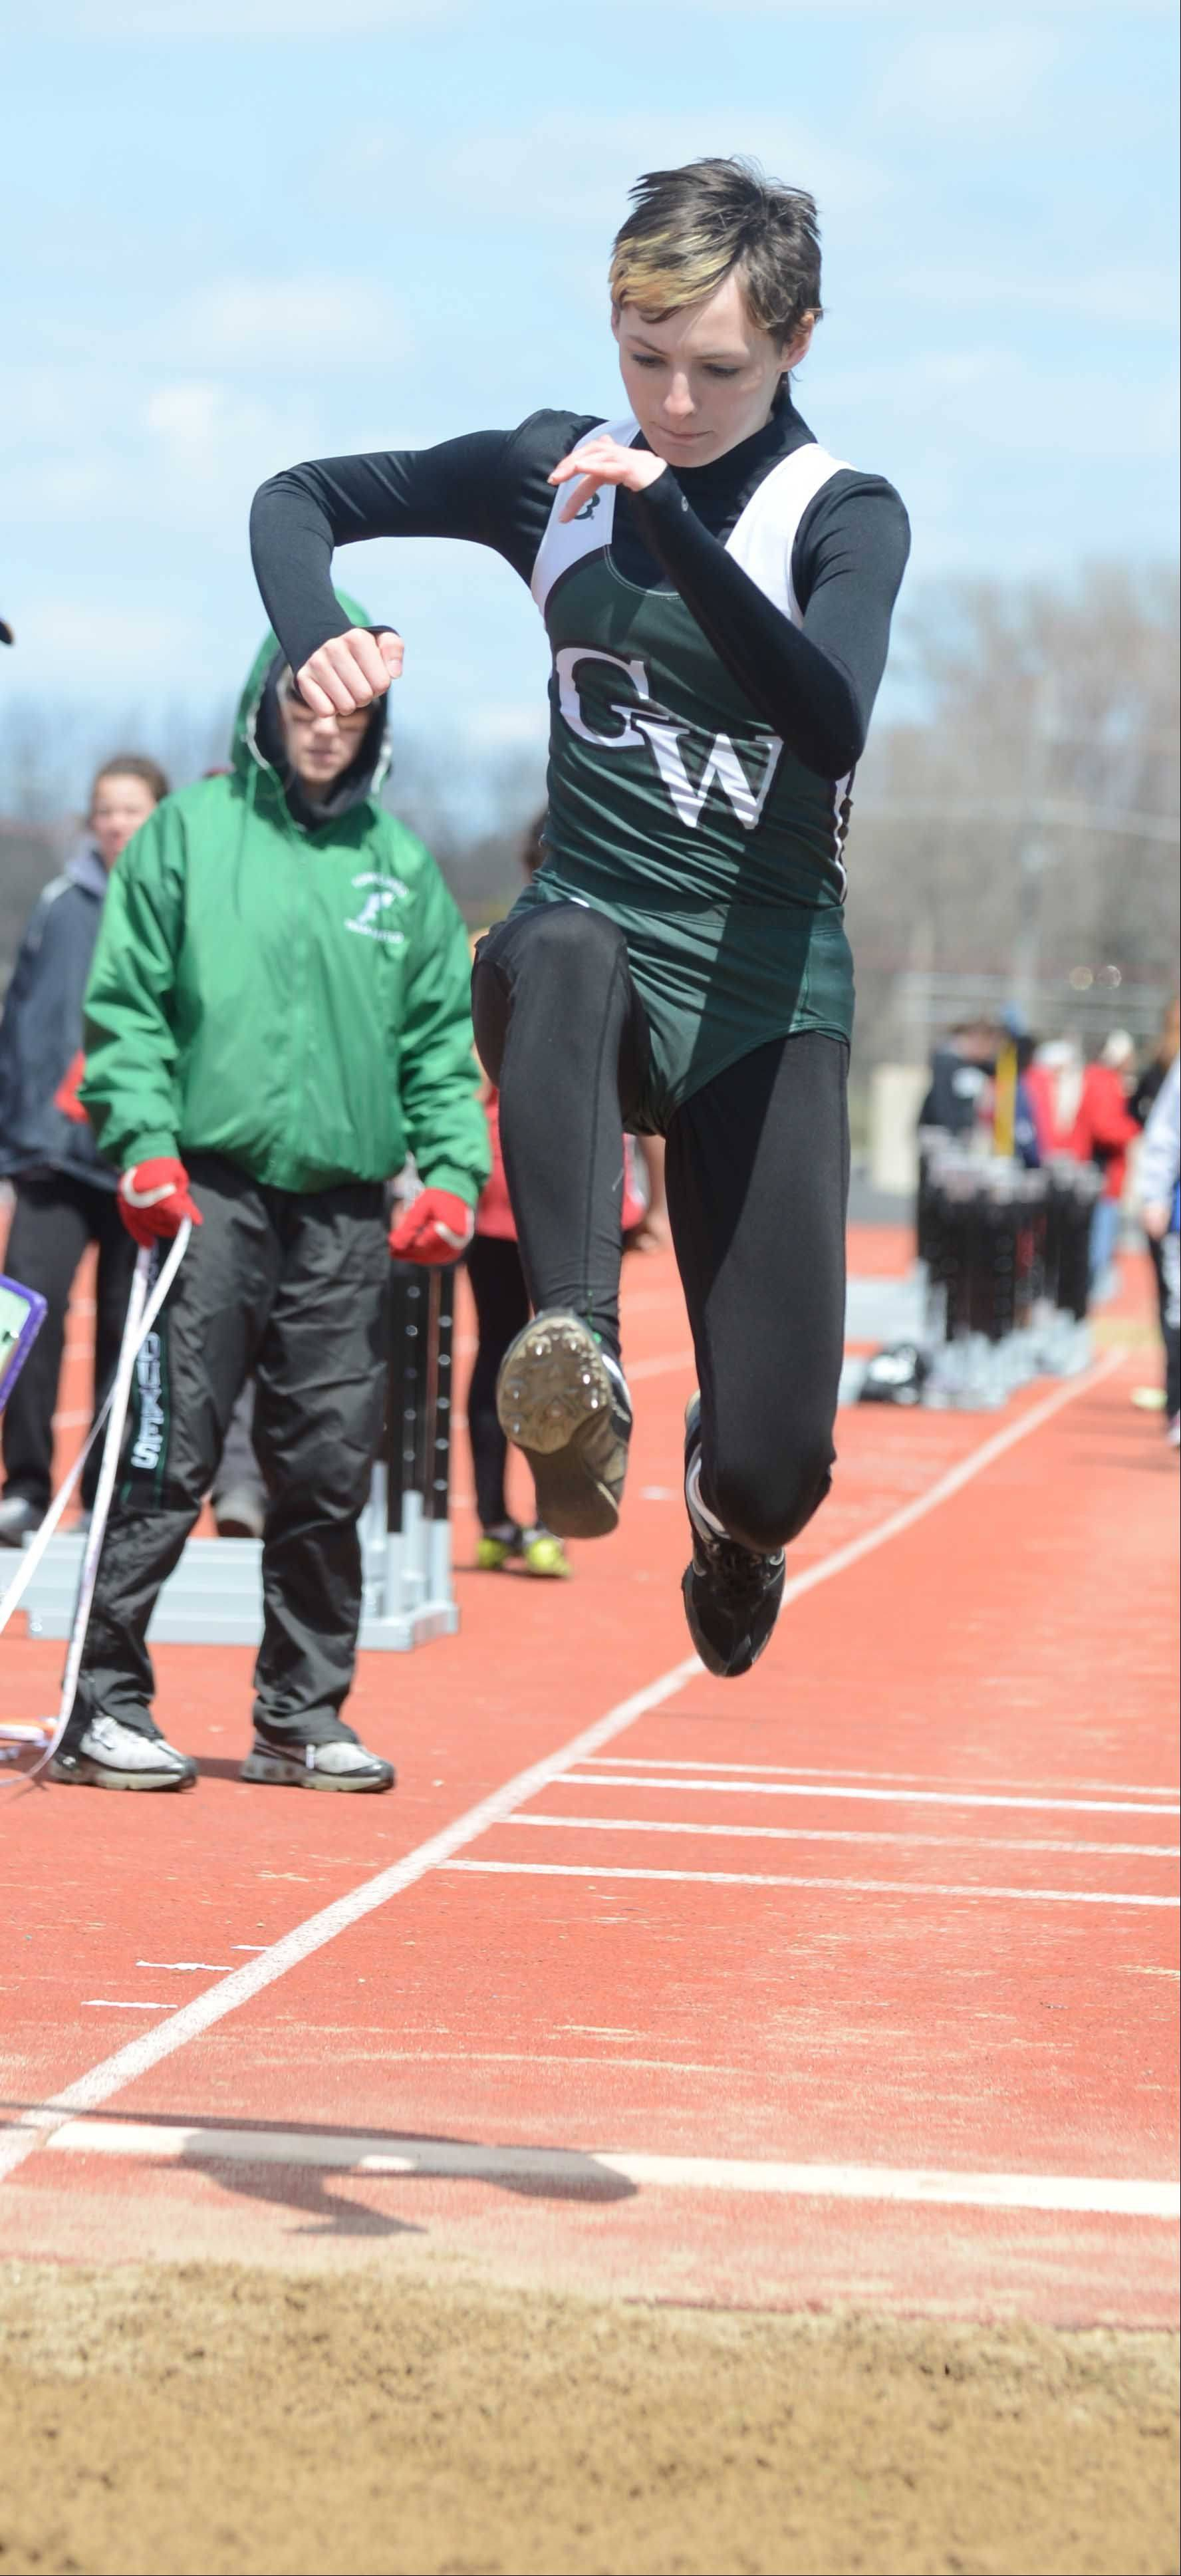 Cynthia Mote of Glenbard West launches during the triple jump during the Sue Pariseau girls track invitational hosted by Glenbard West Saturday.